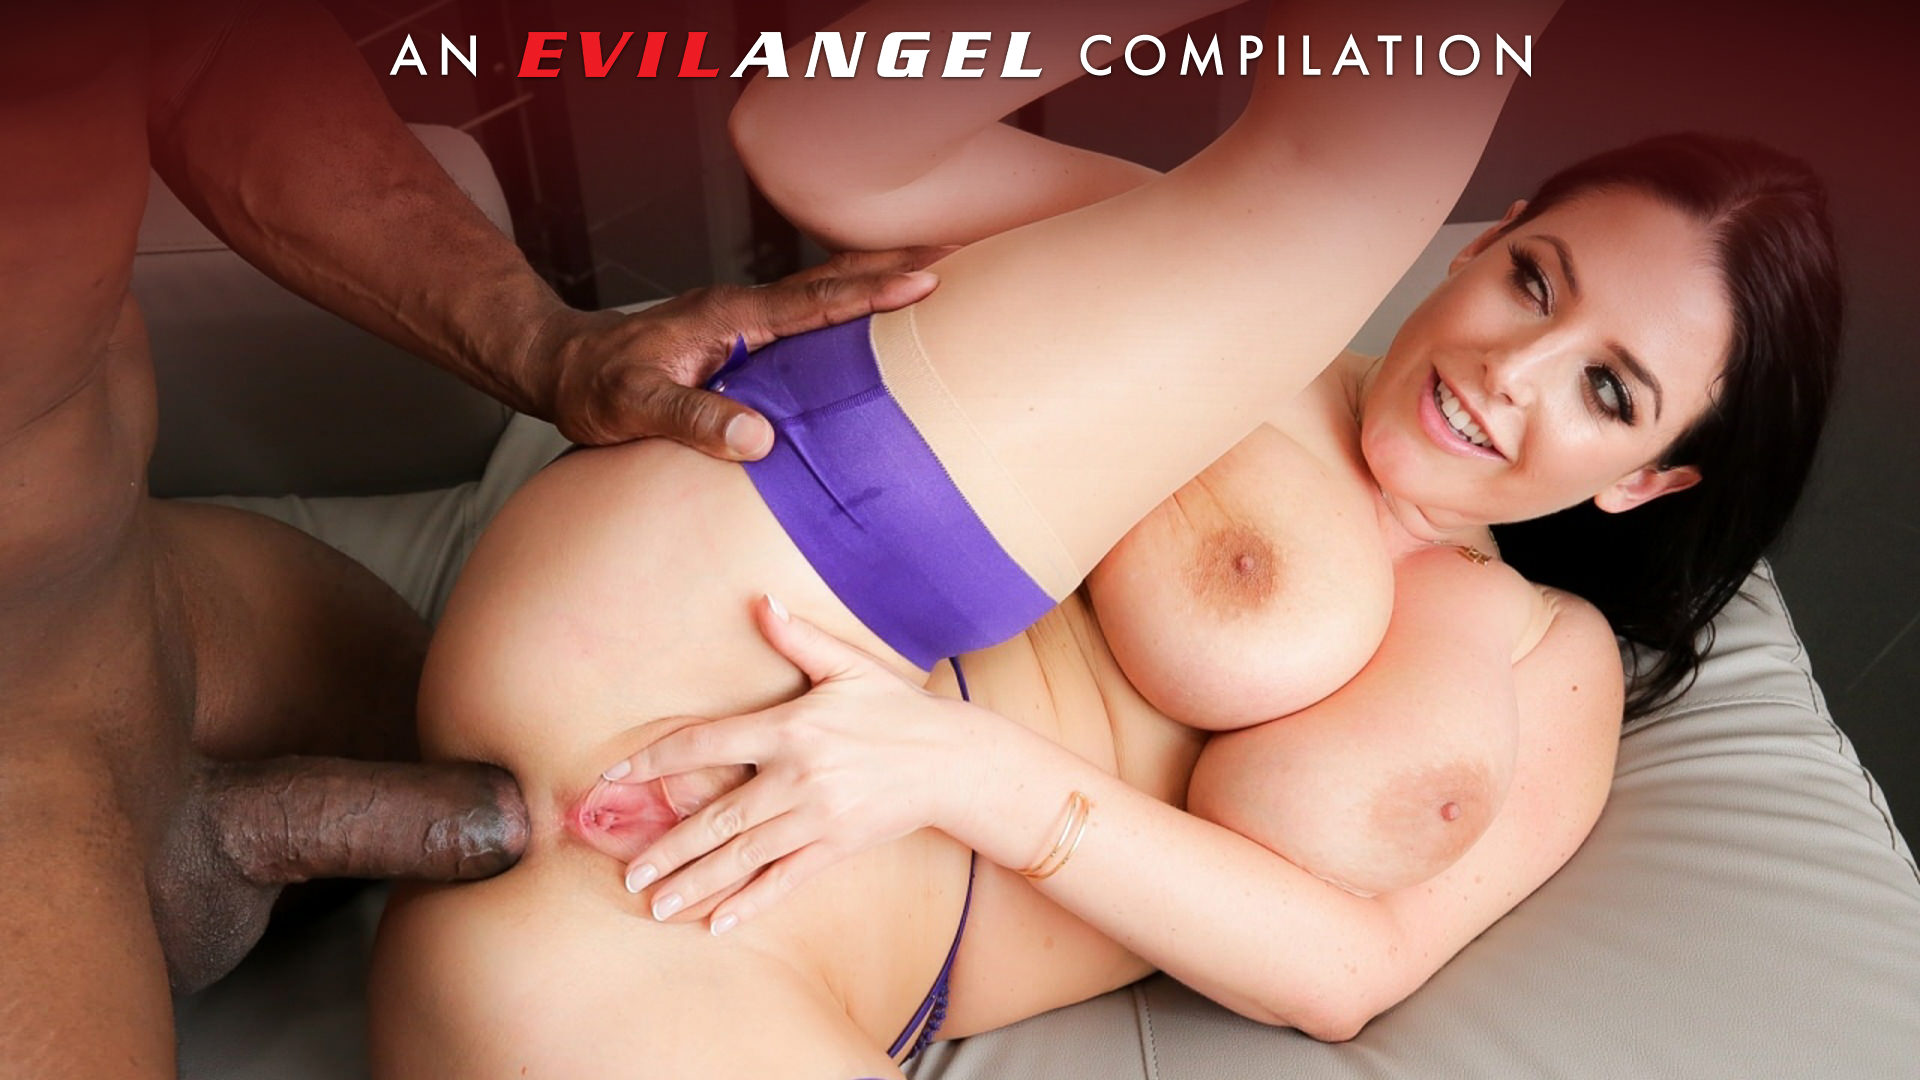 BBC Anal Compilation - Chris Streams, Scene #01